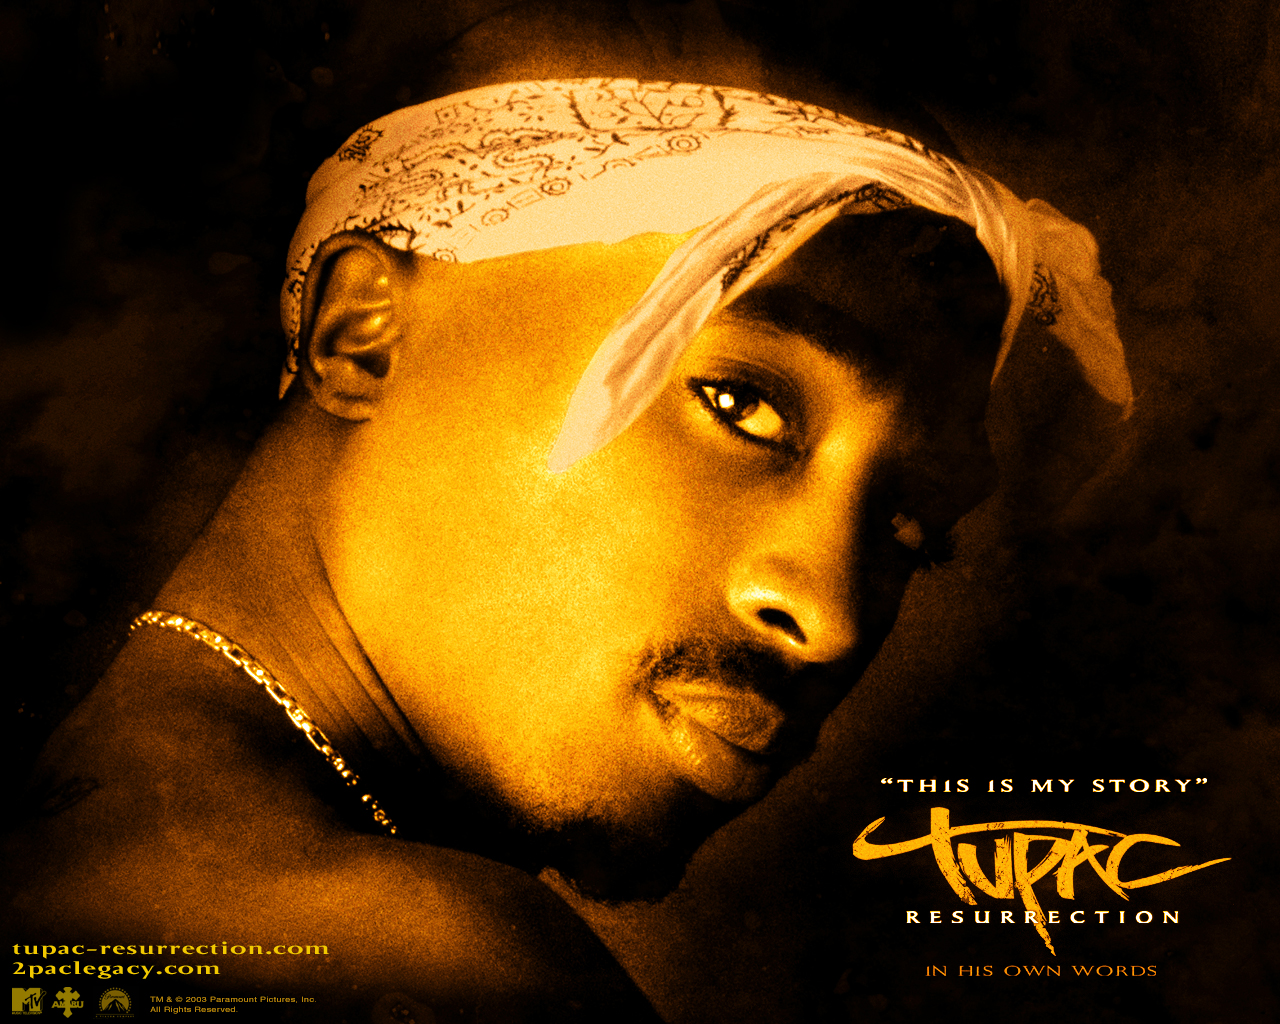 18 2Pac Wallpaper 1280x1024 Pixel Popular HD 26559 1280x1024